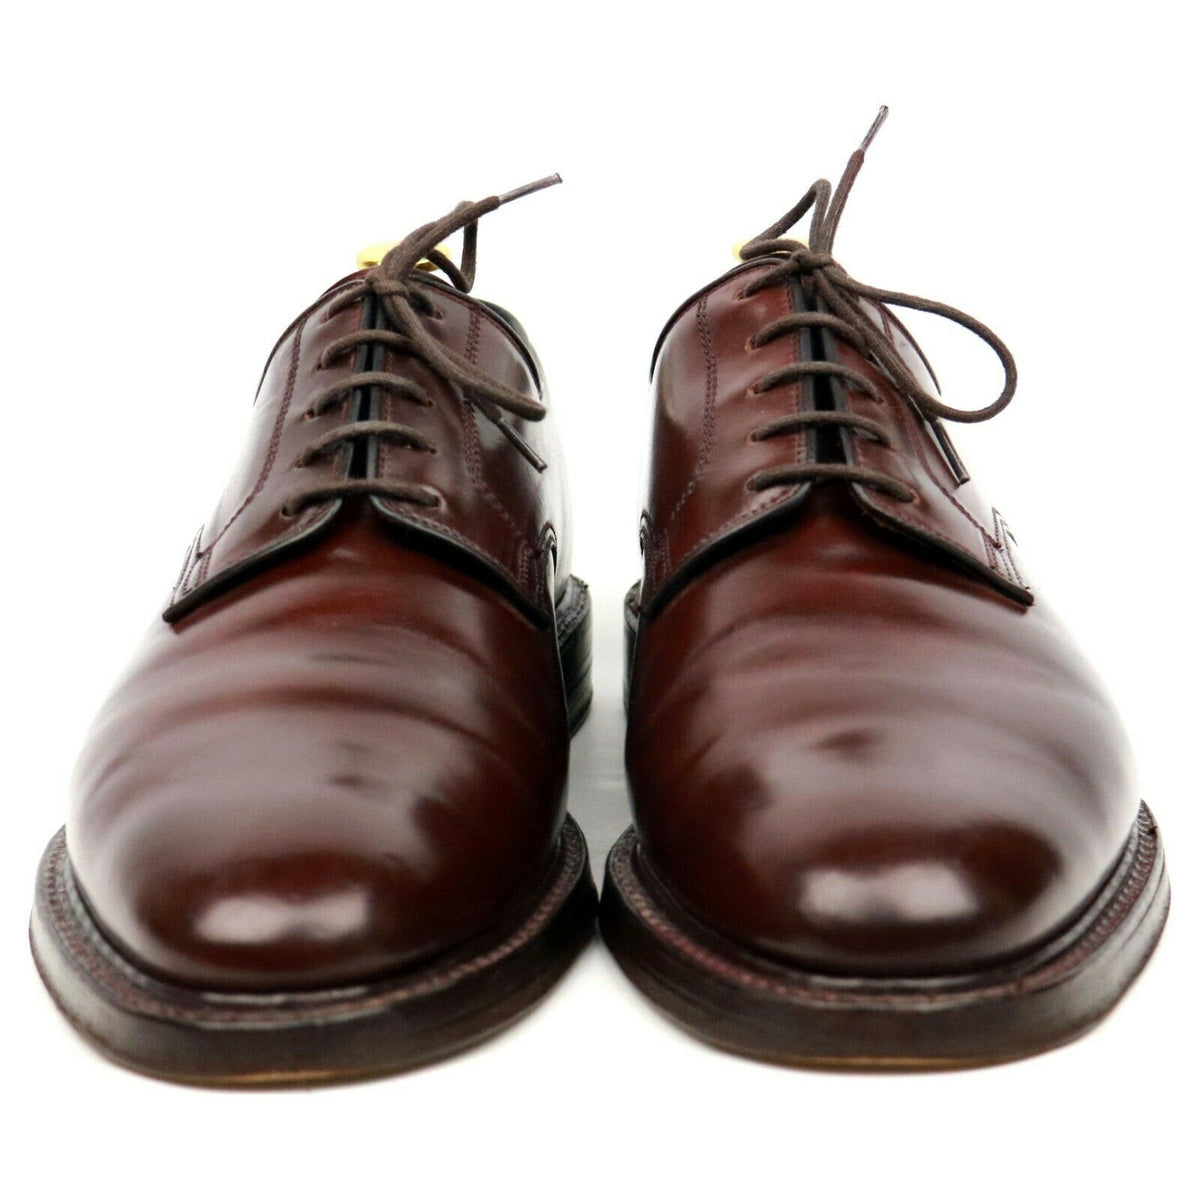 Crockett & Jones 'Ashdown' Burgundy Cordovan Leather Derby UK 8 E